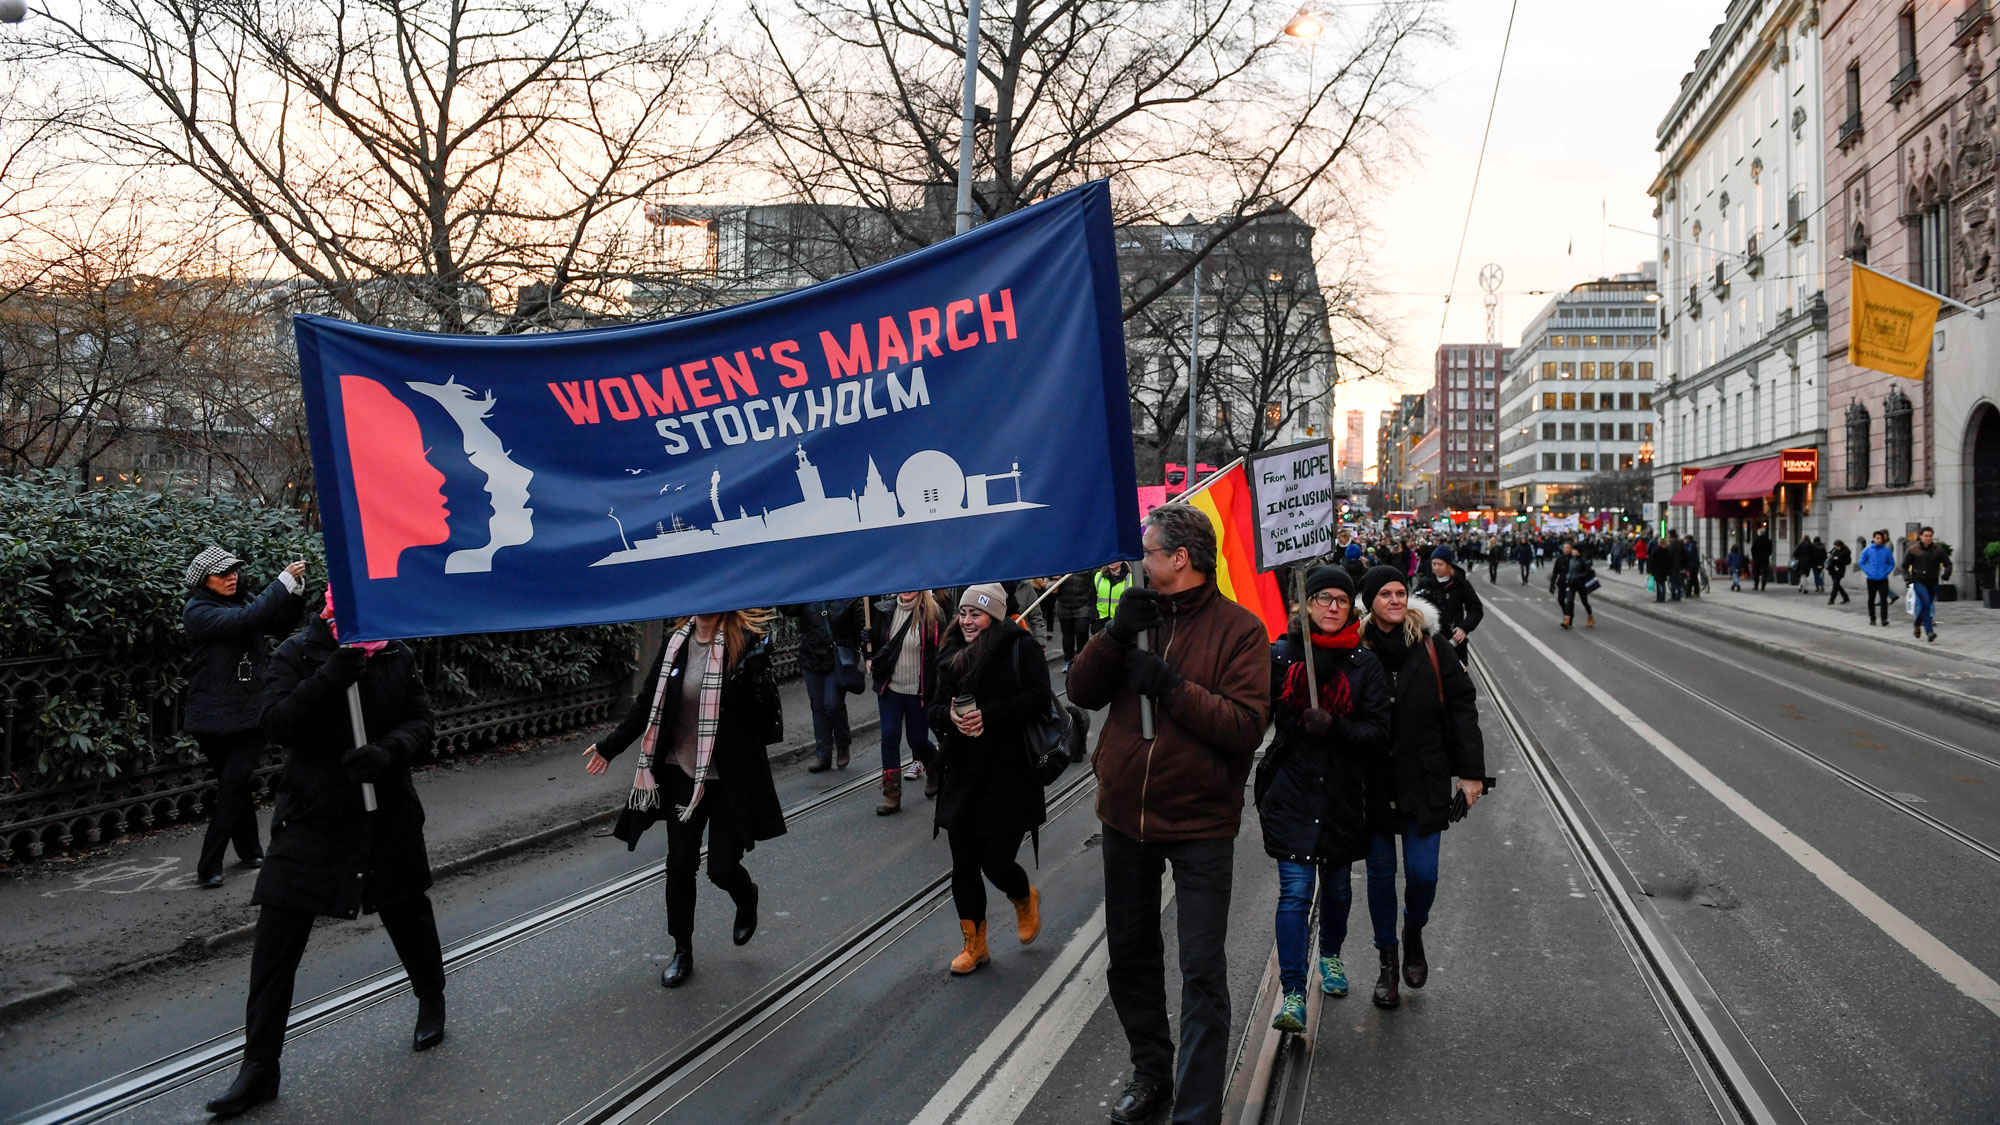 """People carry a large banner that says """"Women's March Stockholm"""" down a wide city street."""